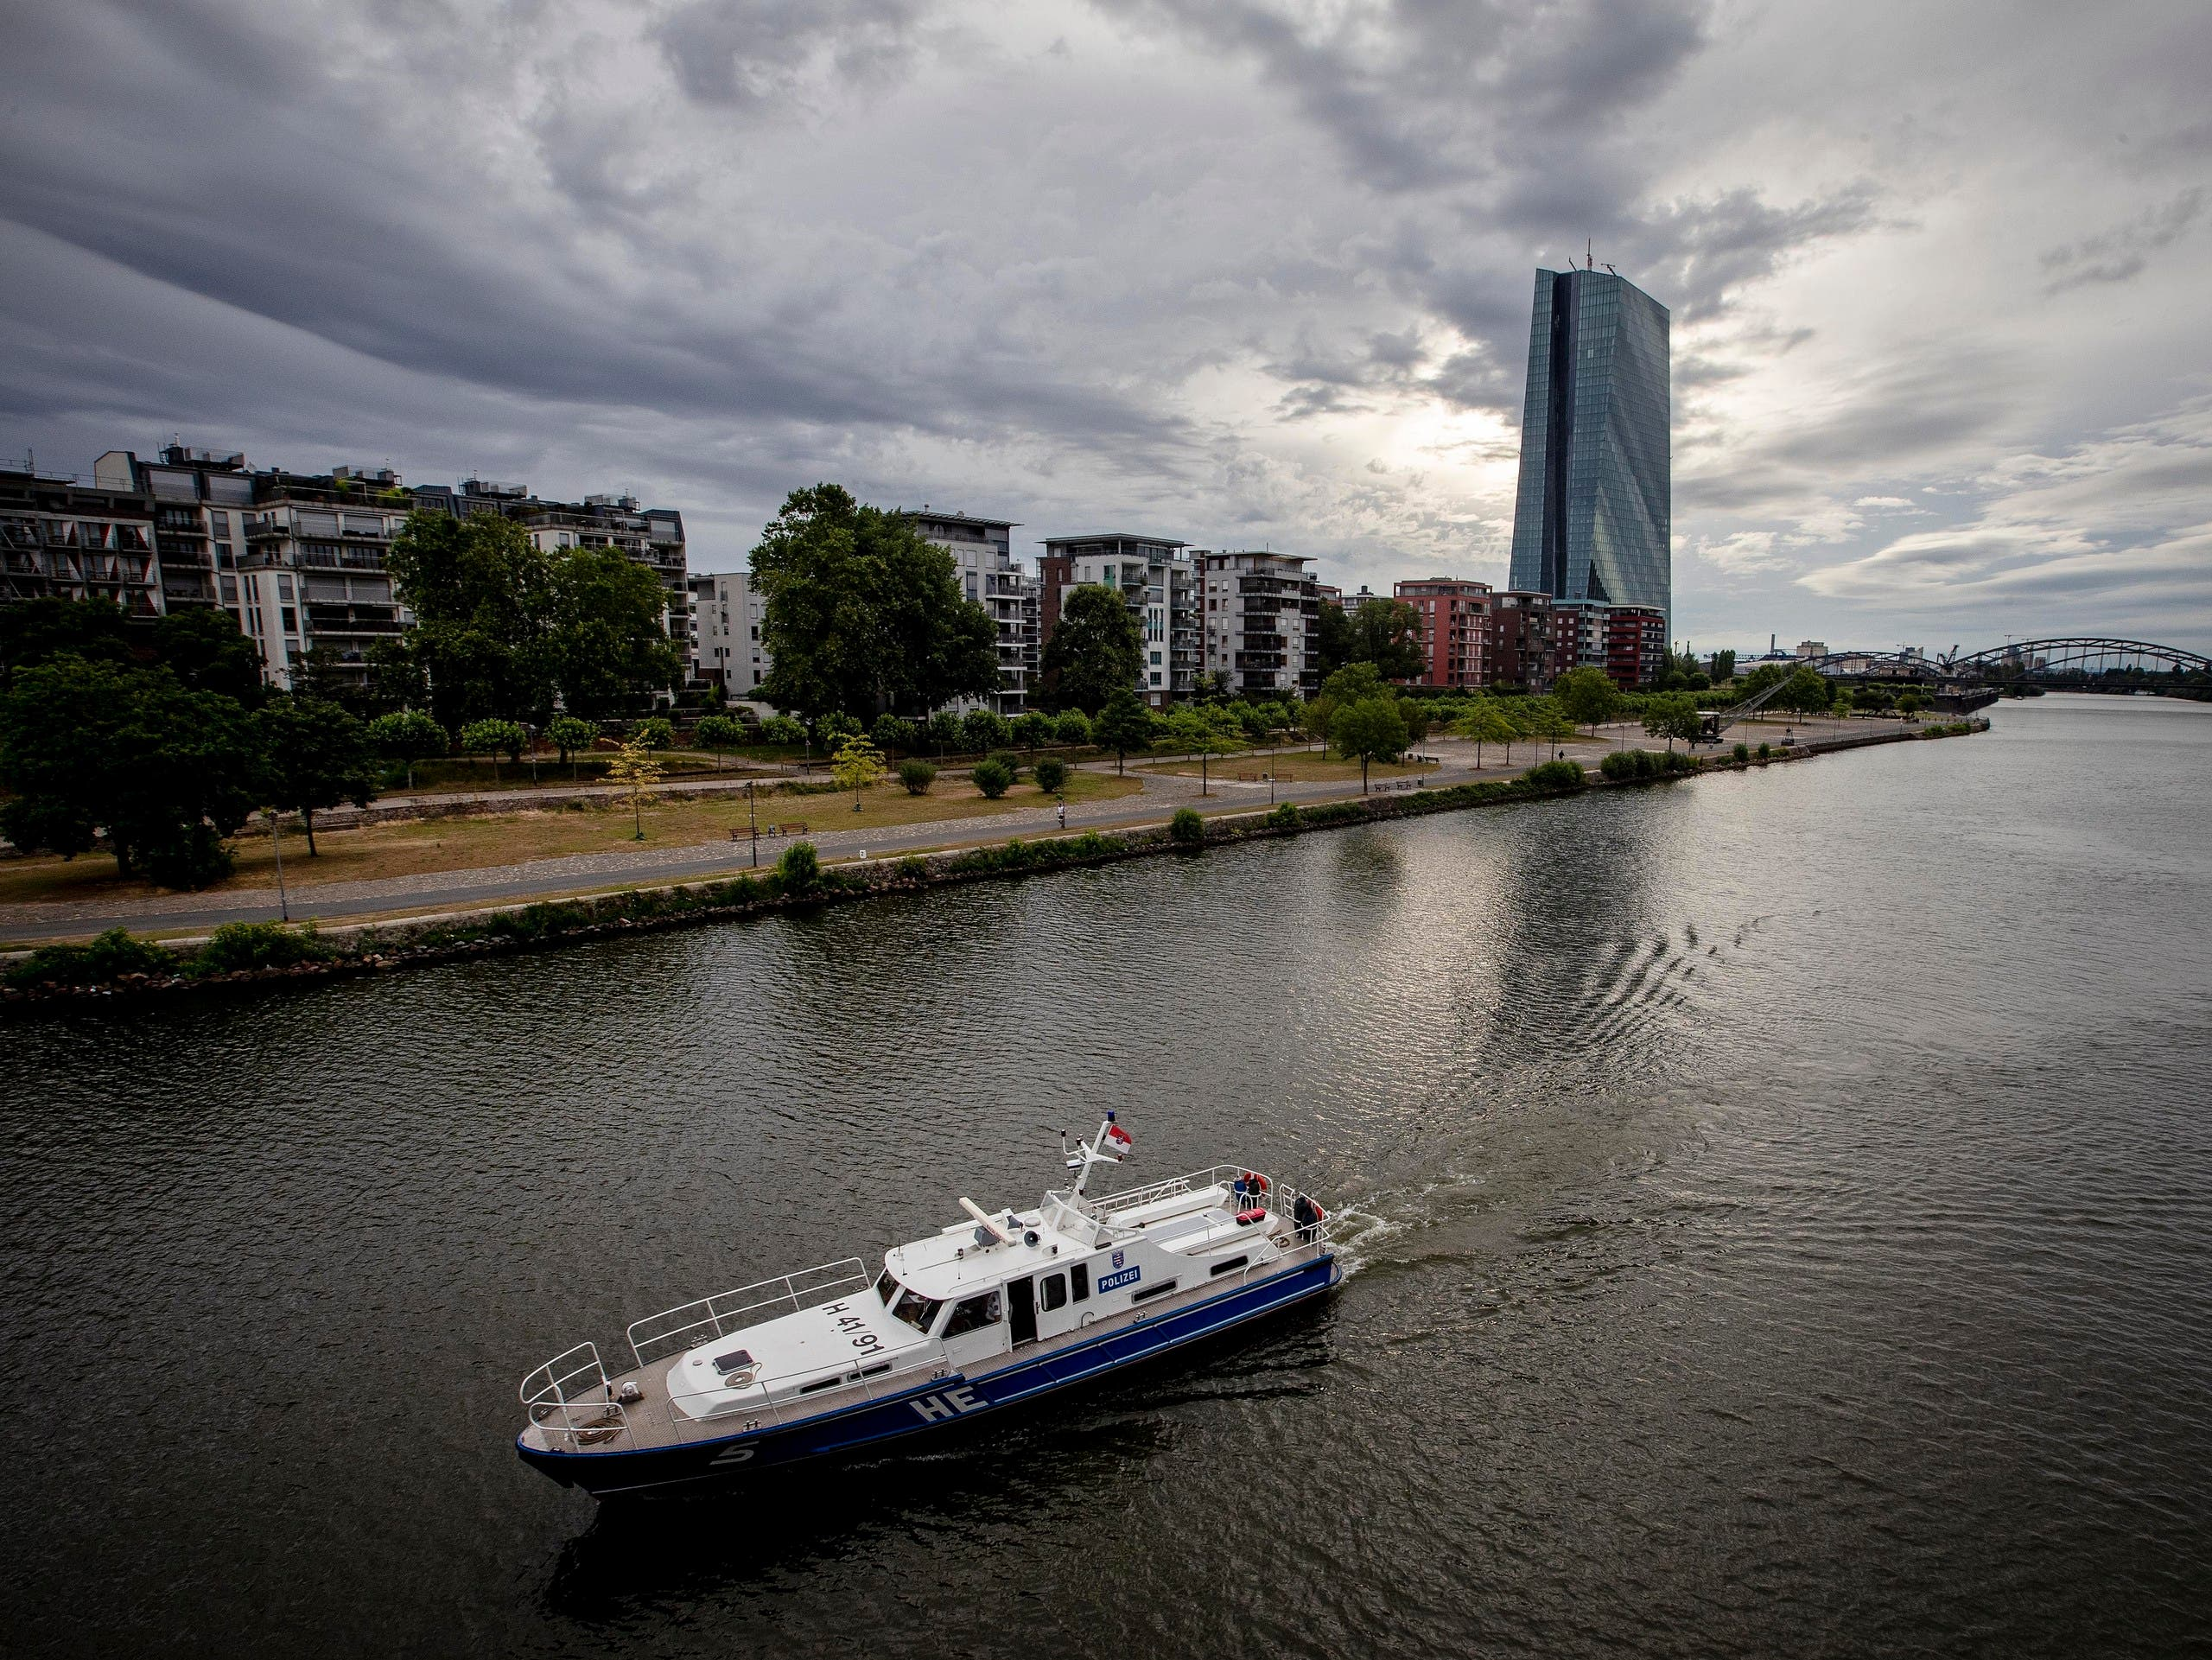 A police boat patrols on the river Main near the European Central Bank, background as 16 000 people are evacuated prior to the defusing of a WWII bomb in Frankfurt, Germany, Sunday, July 7, 2019. (File photo: AP)